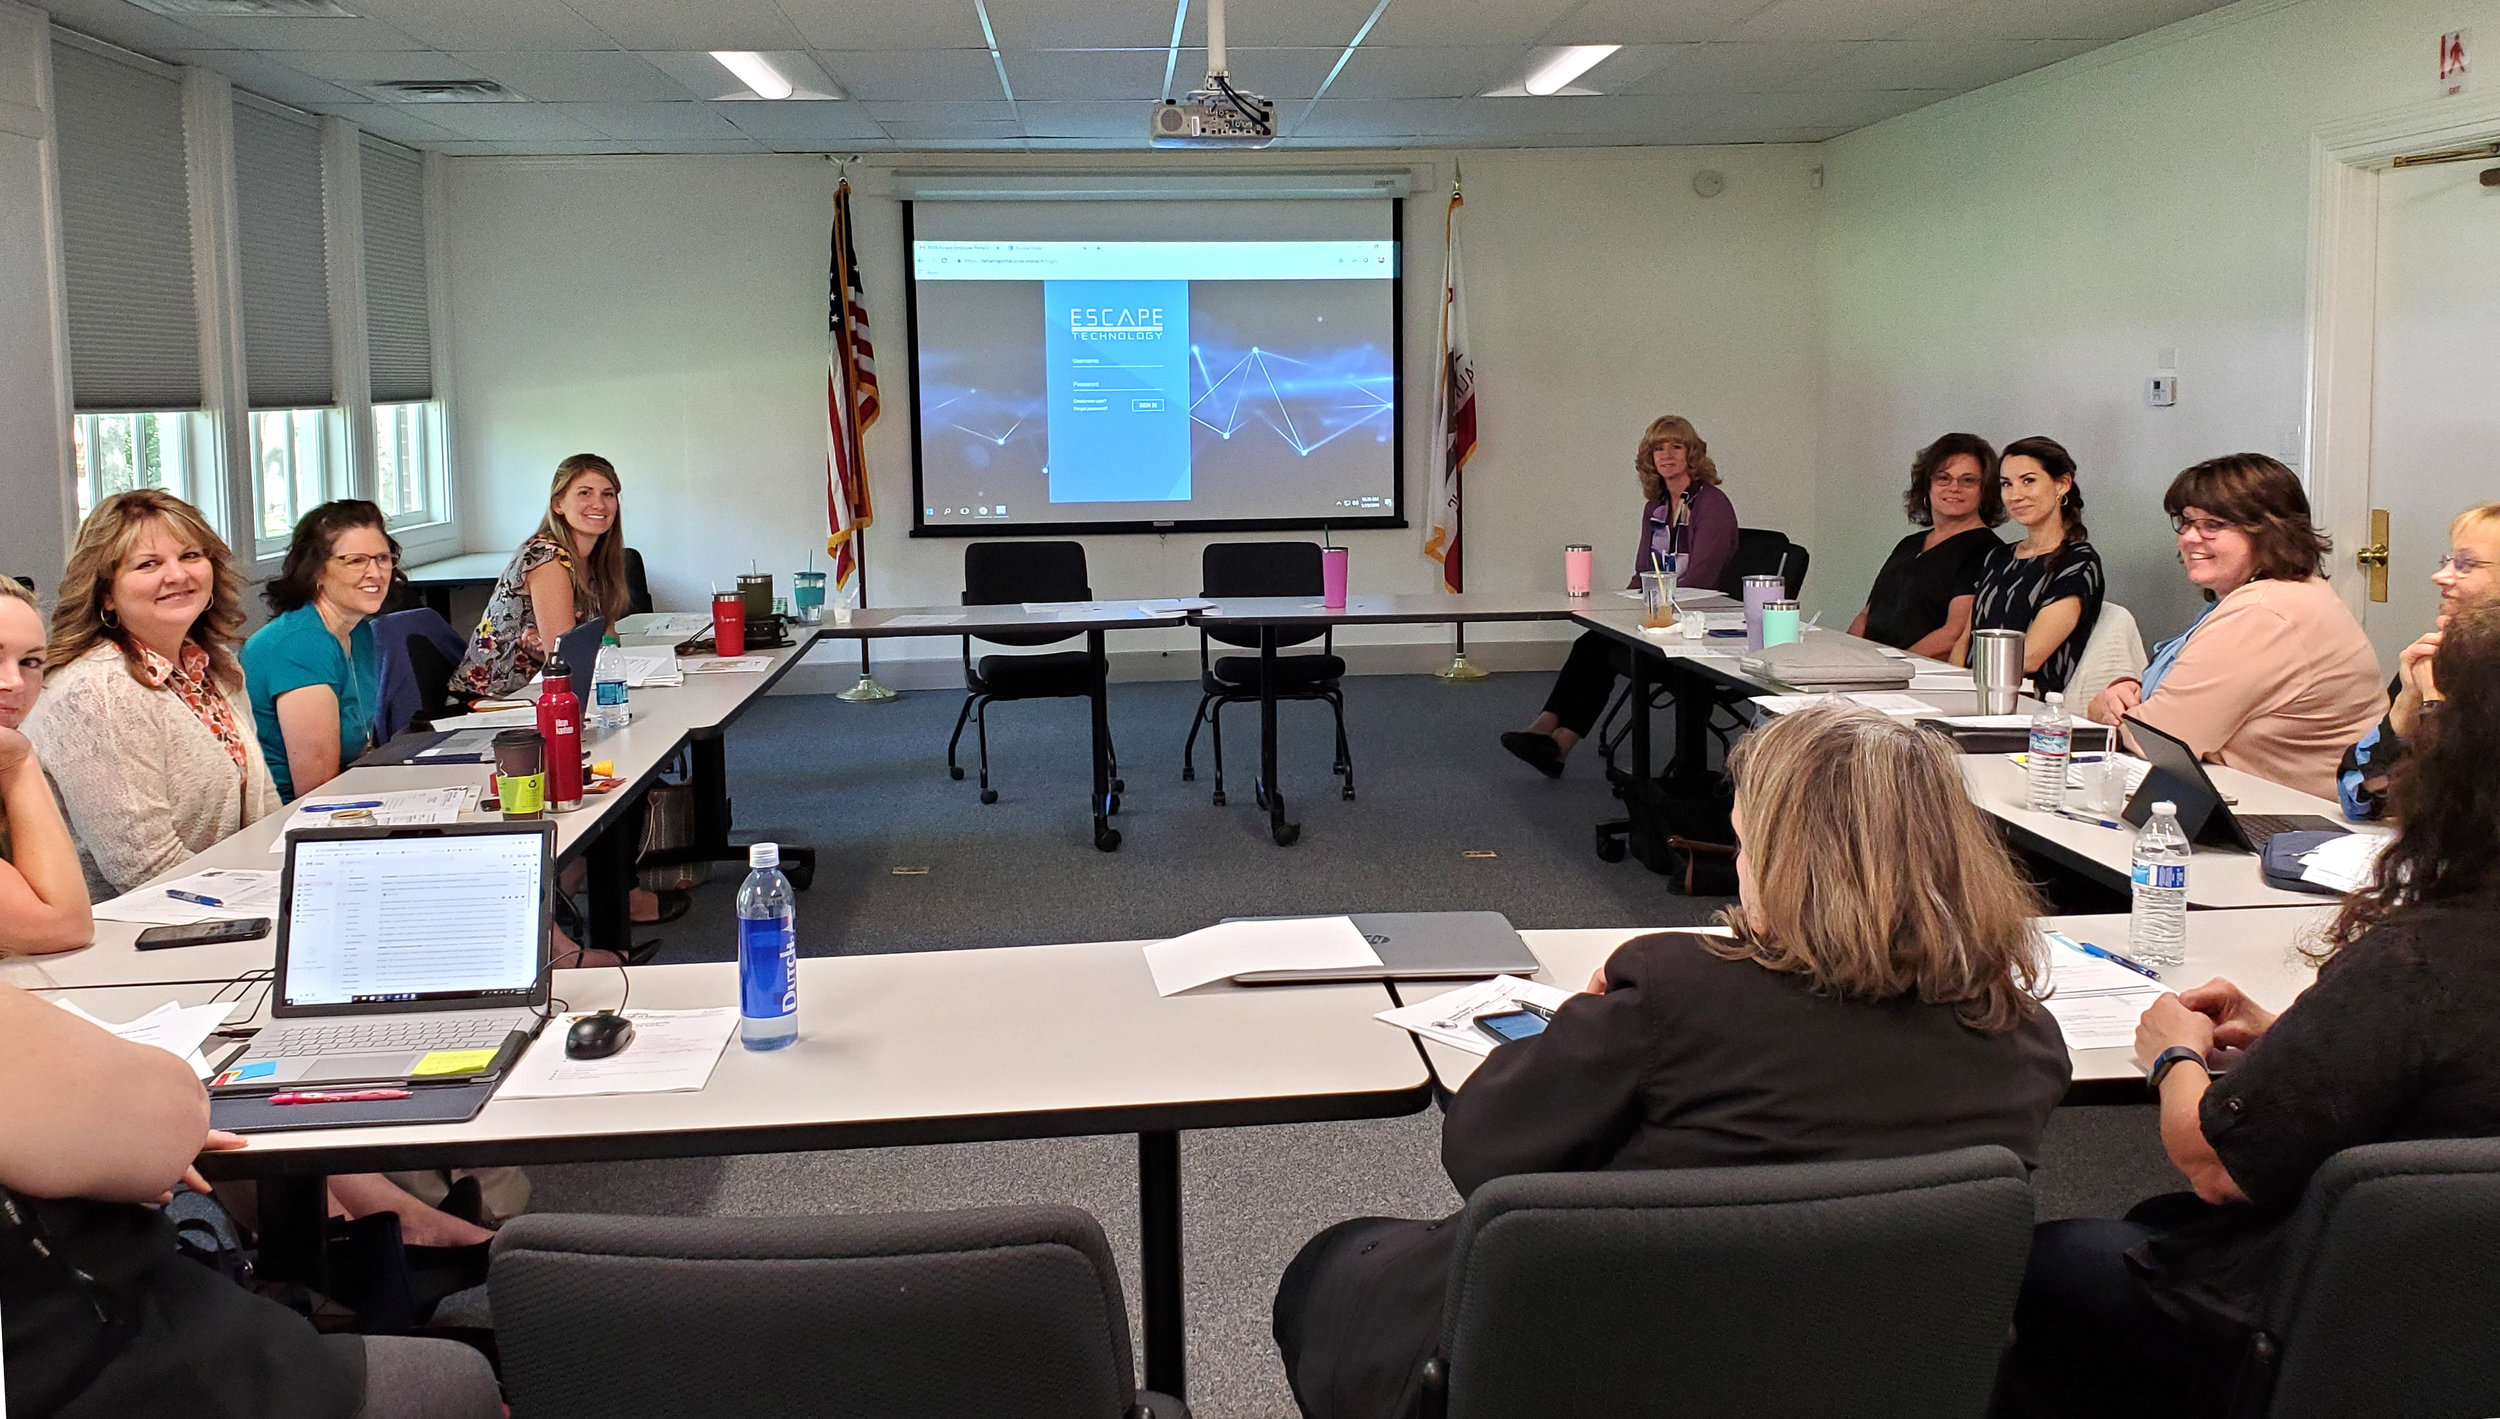 Business Services Meeting at Tehama CDE where the CBO's are viewing Escape Employee Online Portal's new release and look.